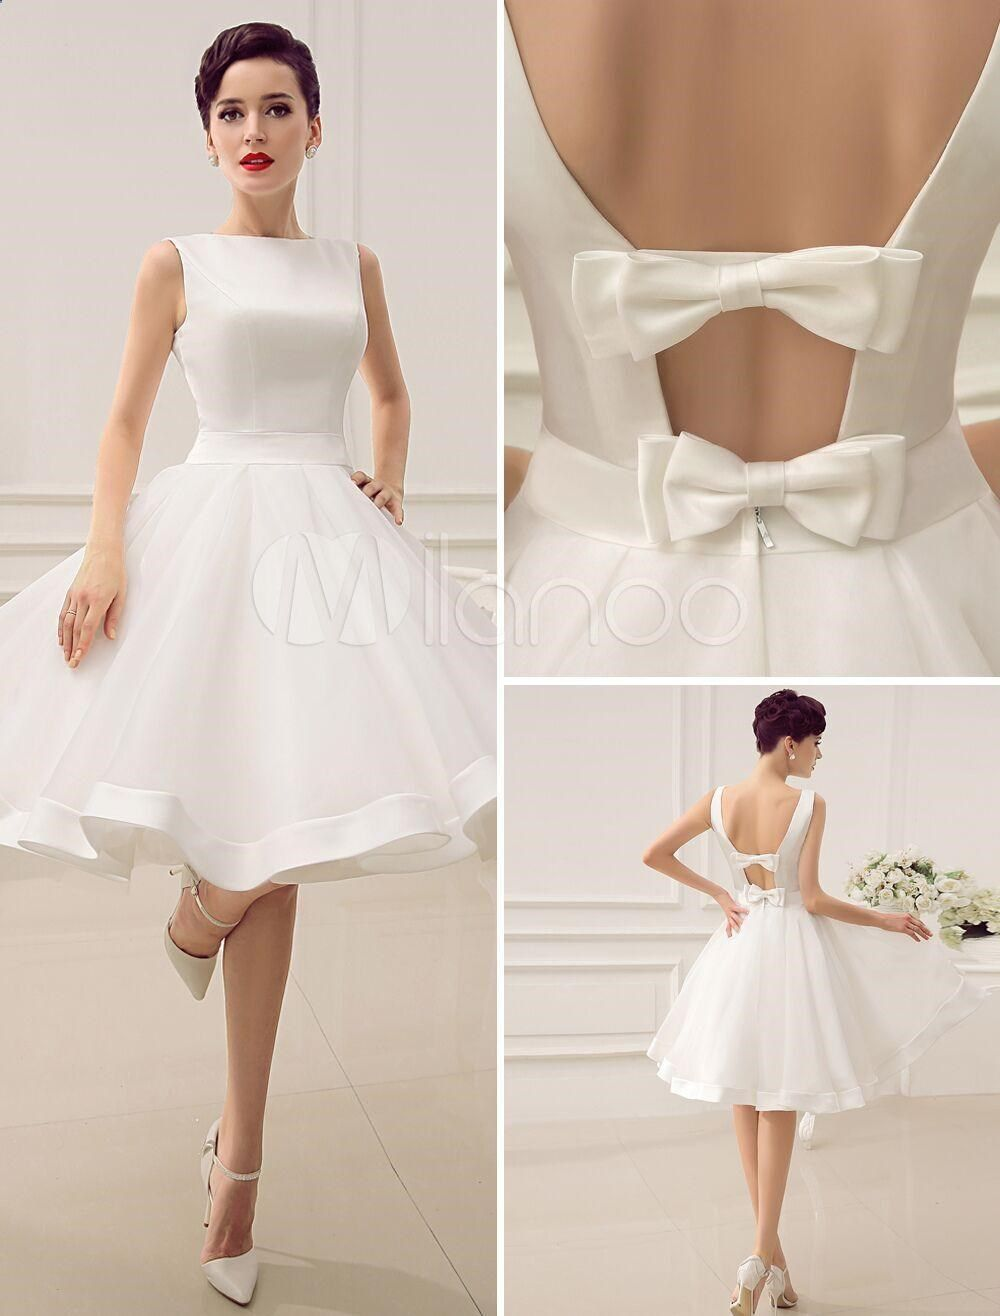 Little white wedding dress  Vintage s Short Wedding Dresses Knee Length Bateau Neckline